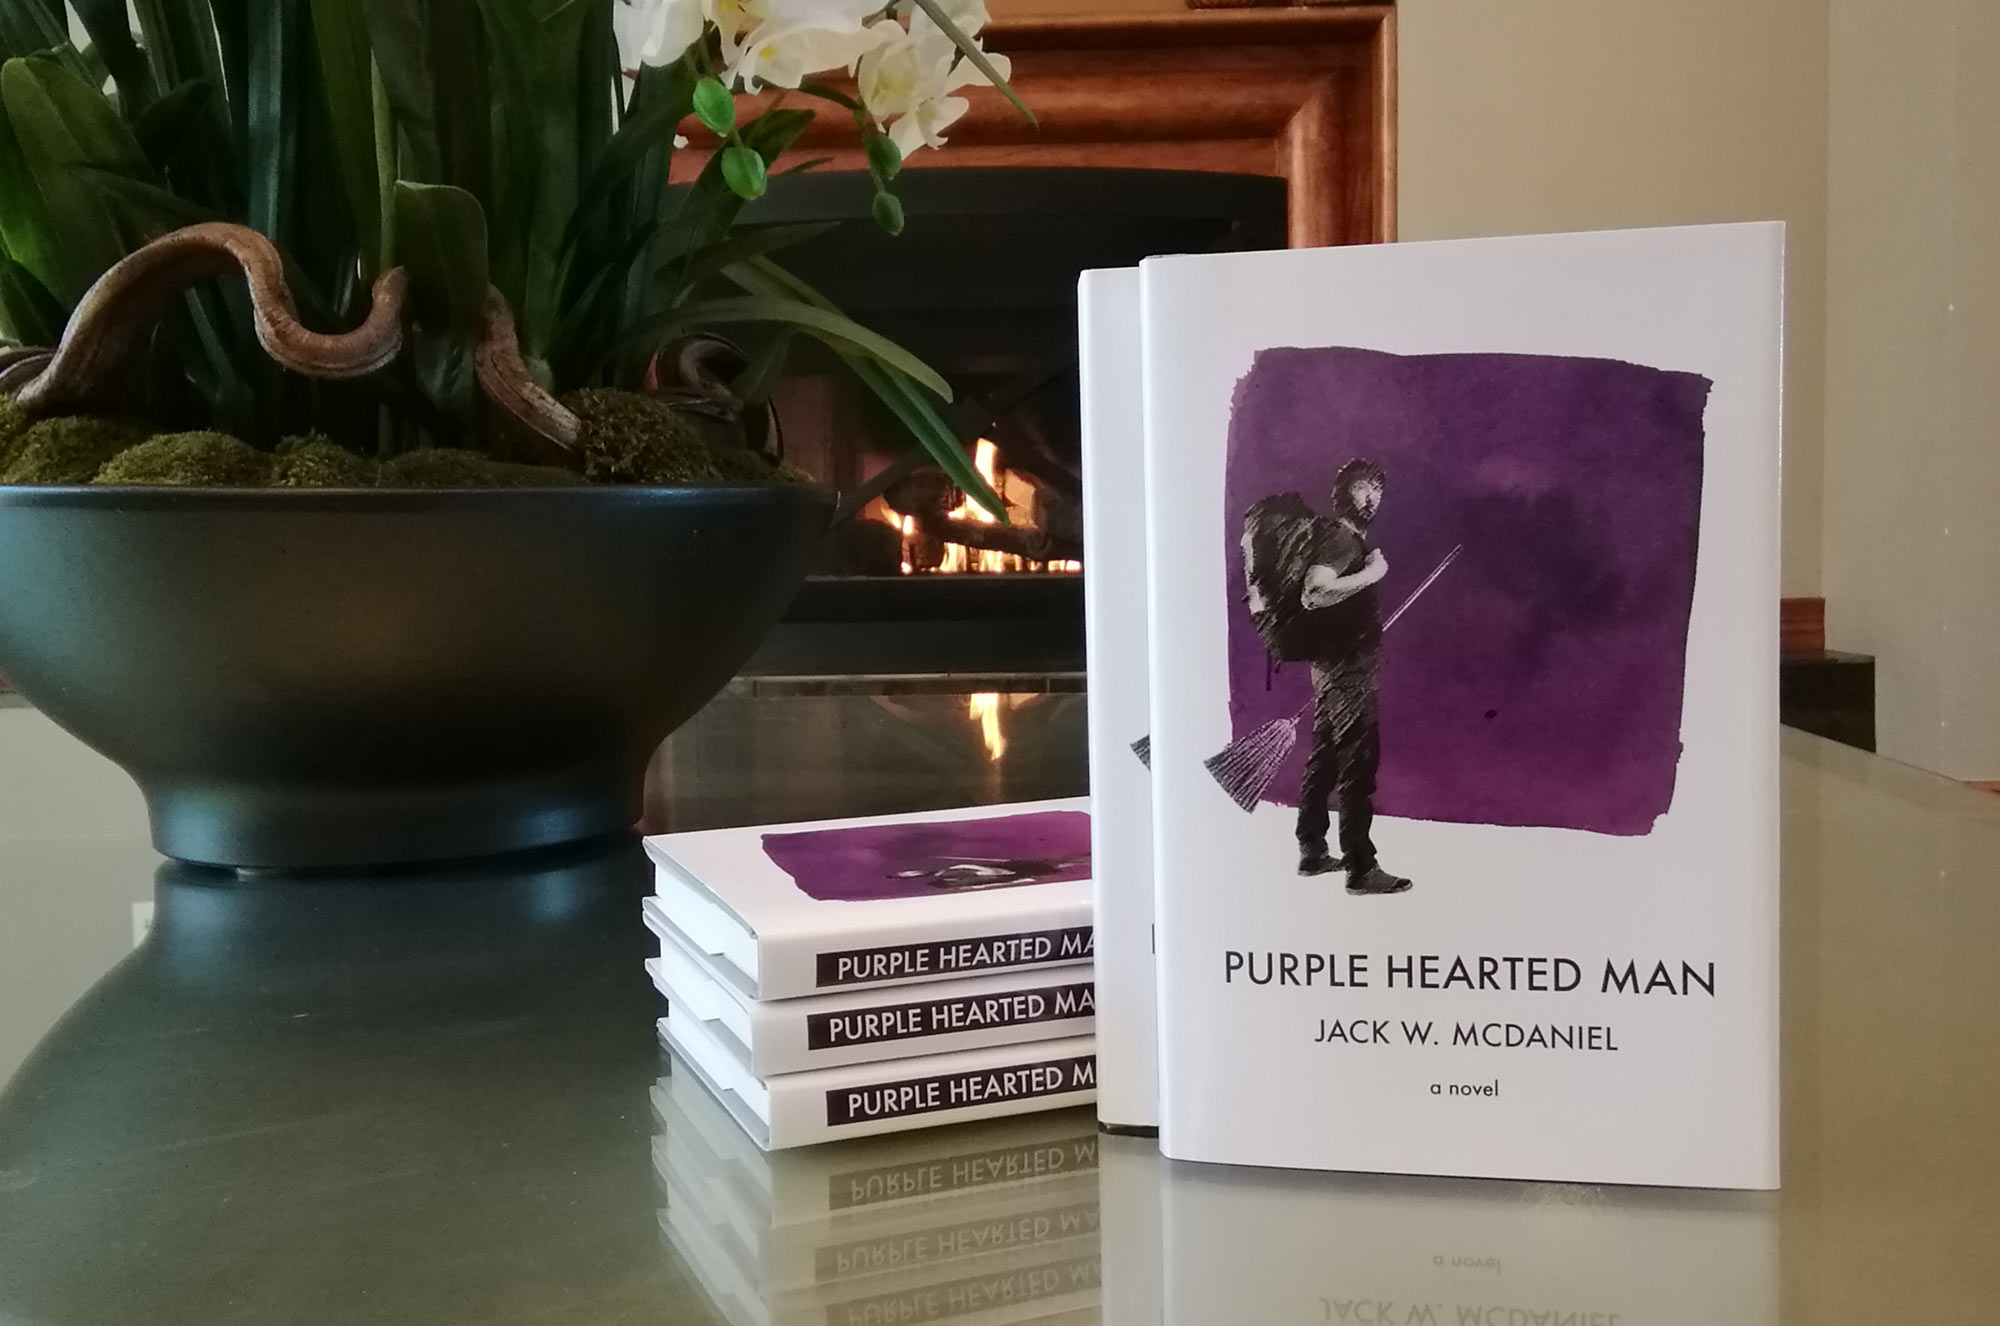 Win a signed hardcover edition of Purple Hearted Man